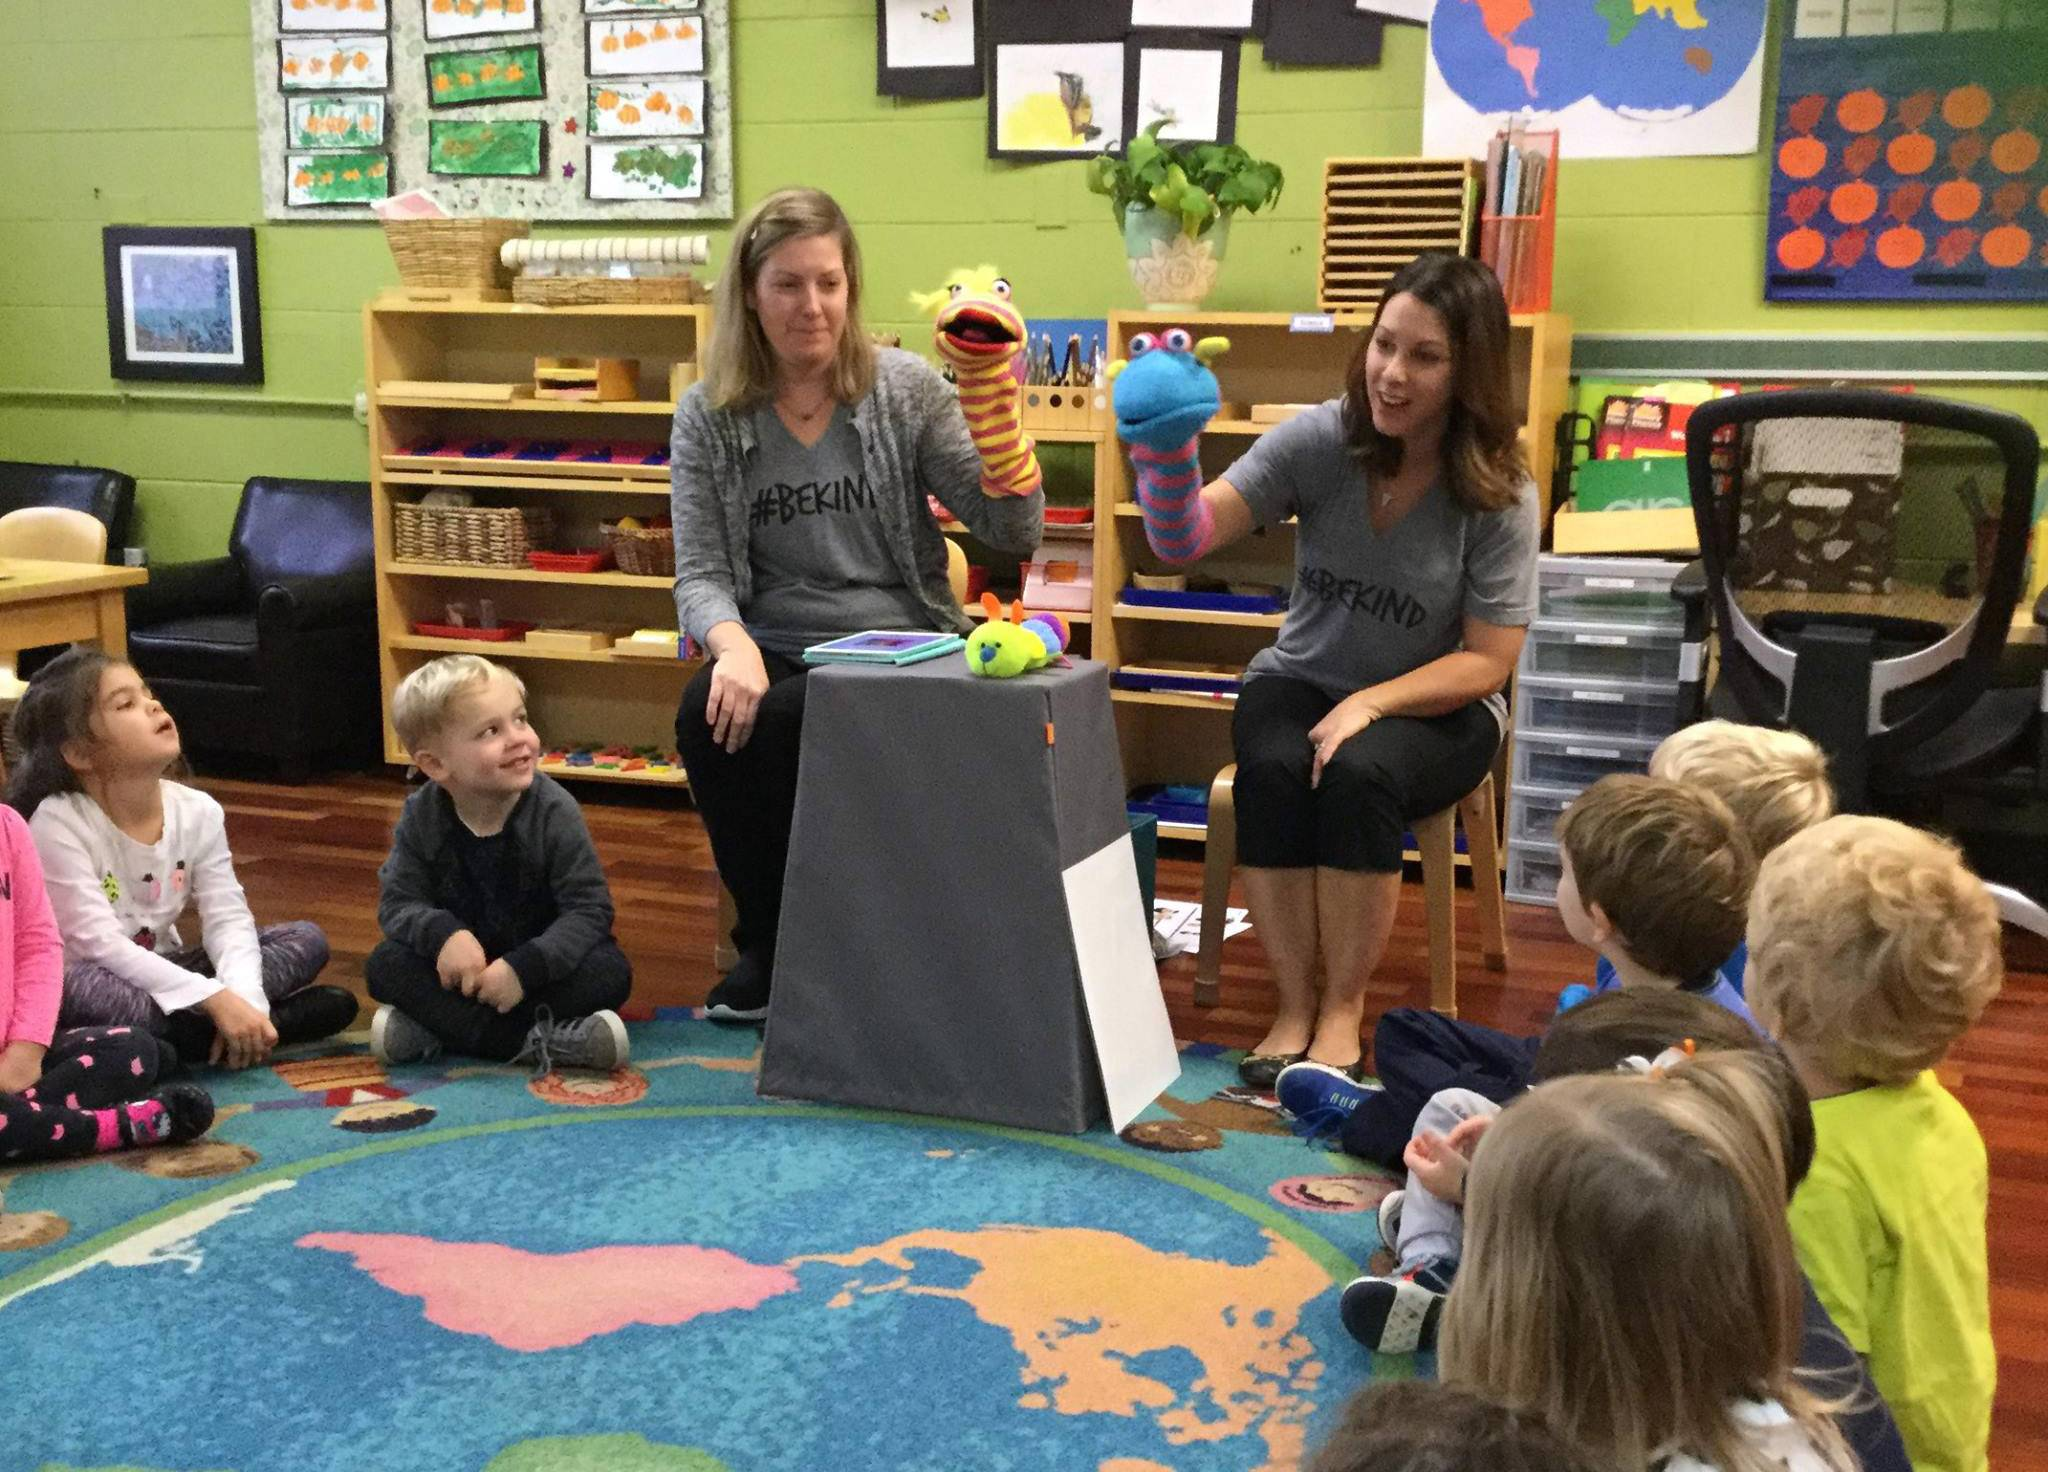 Cindy Feinendegen and Jen Christie, educators from the anti-bullying organization Fox and Trove, work with children at the Village Green Montessori in Libertyville. The organization will hold a kids march Saturday in downtown Libertyville.